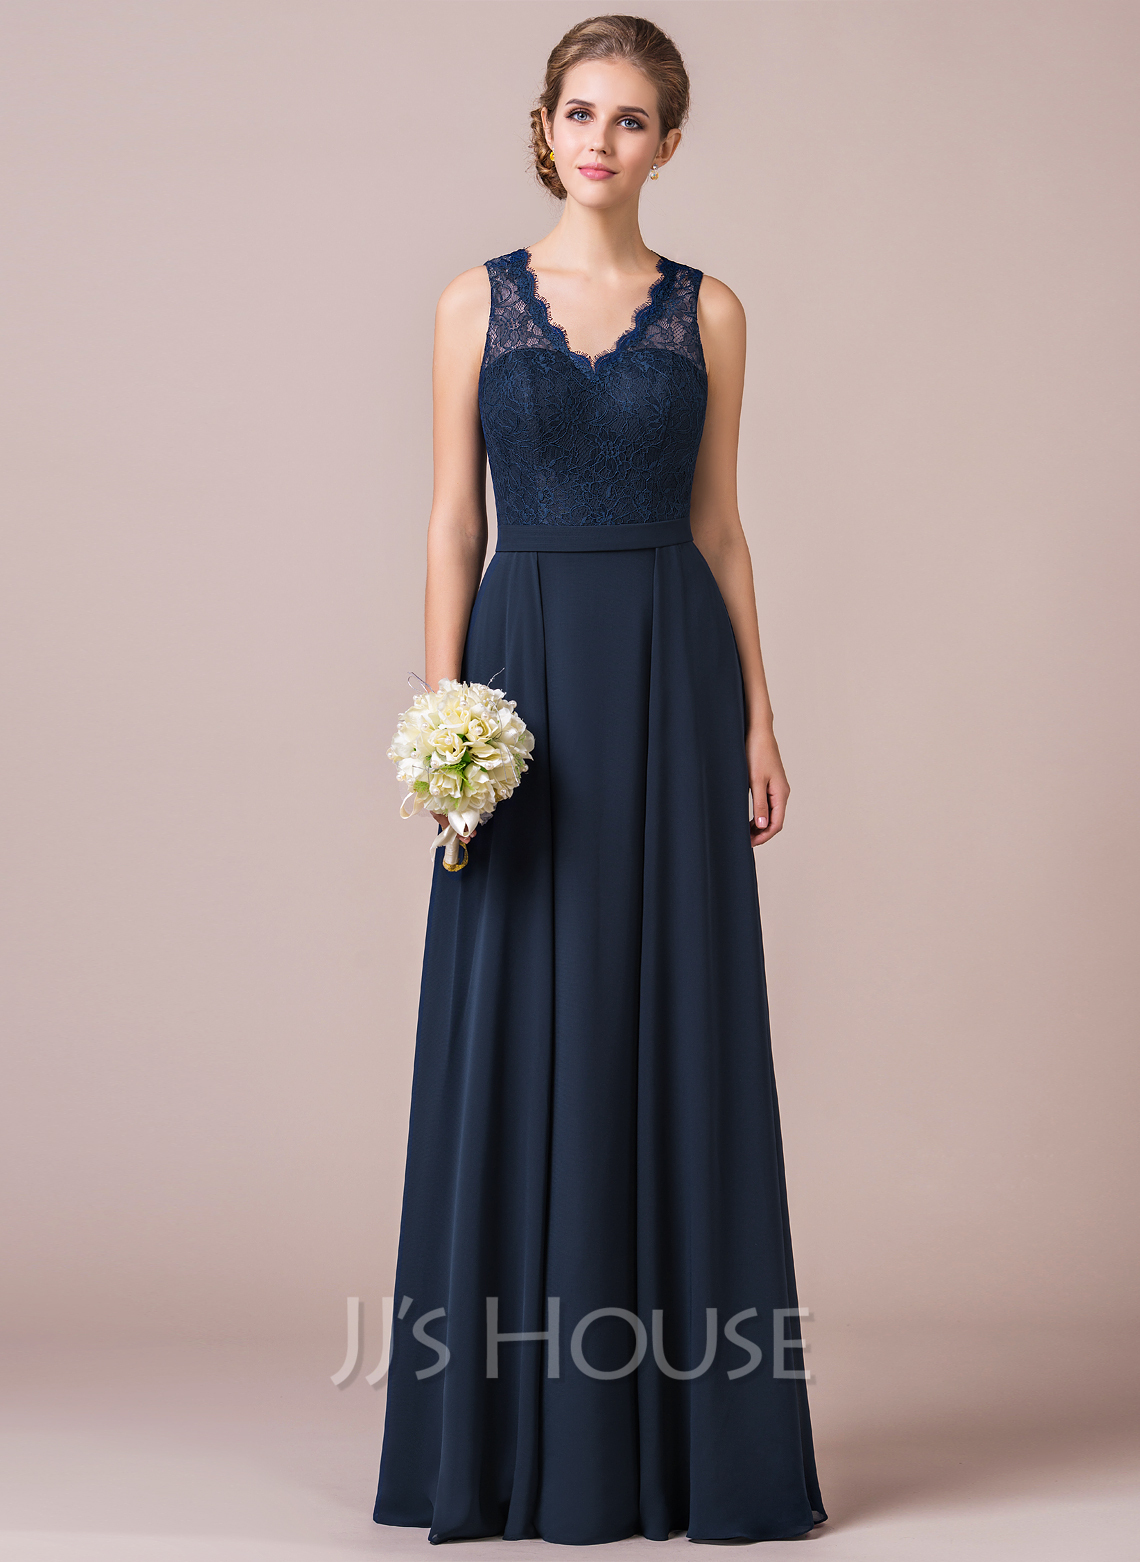 A-Line V-neck Floor-length Chiffon Lace Overlay Bridesmaid Dress